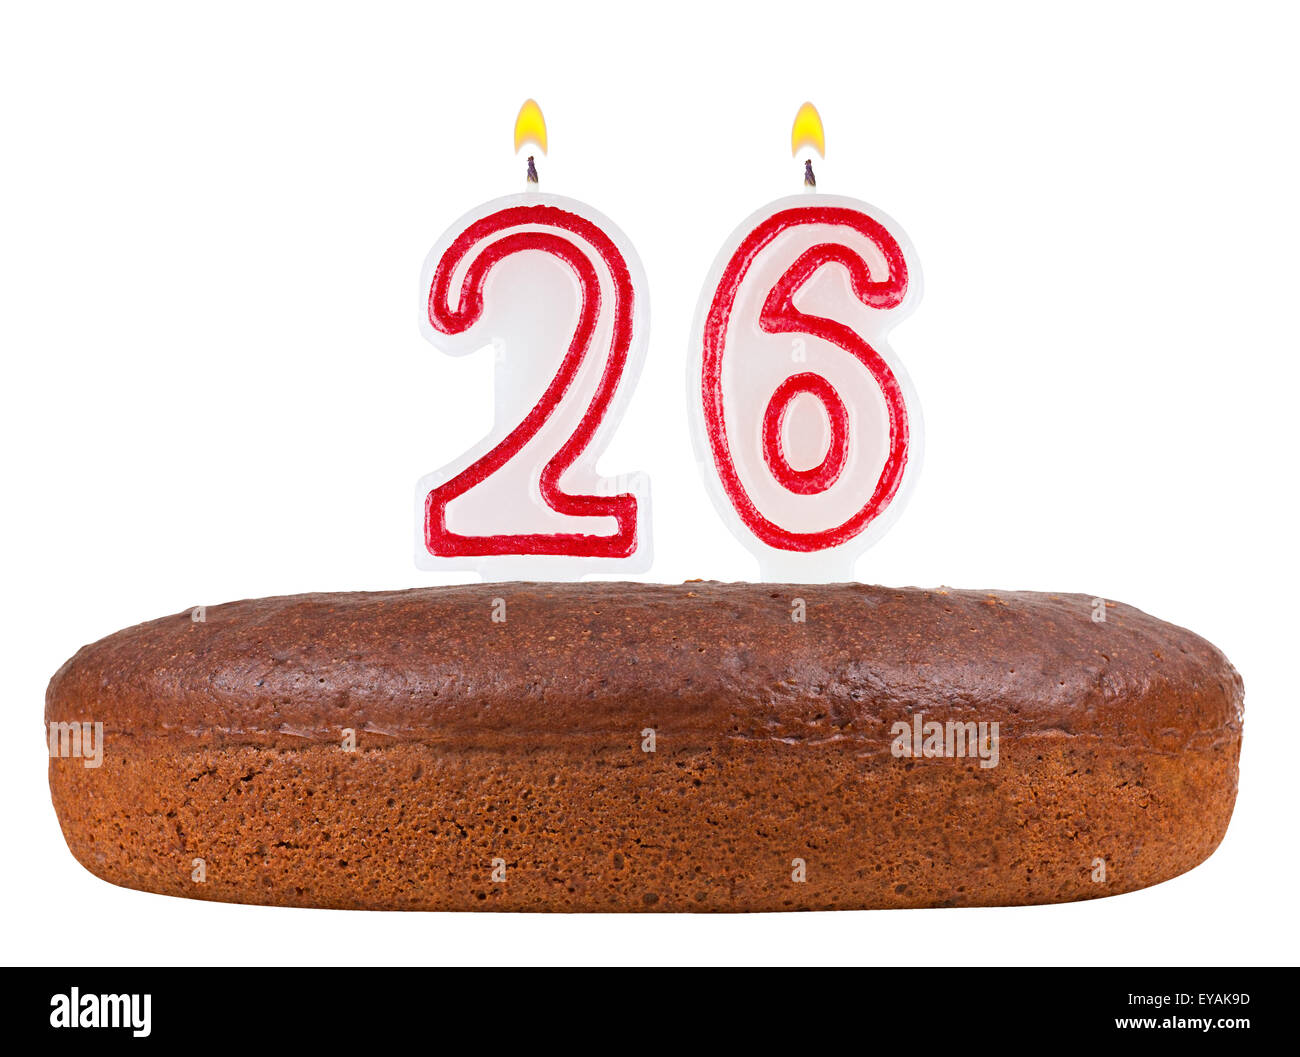 Birthday Cake With Candles Number 26 Isolated On White Background